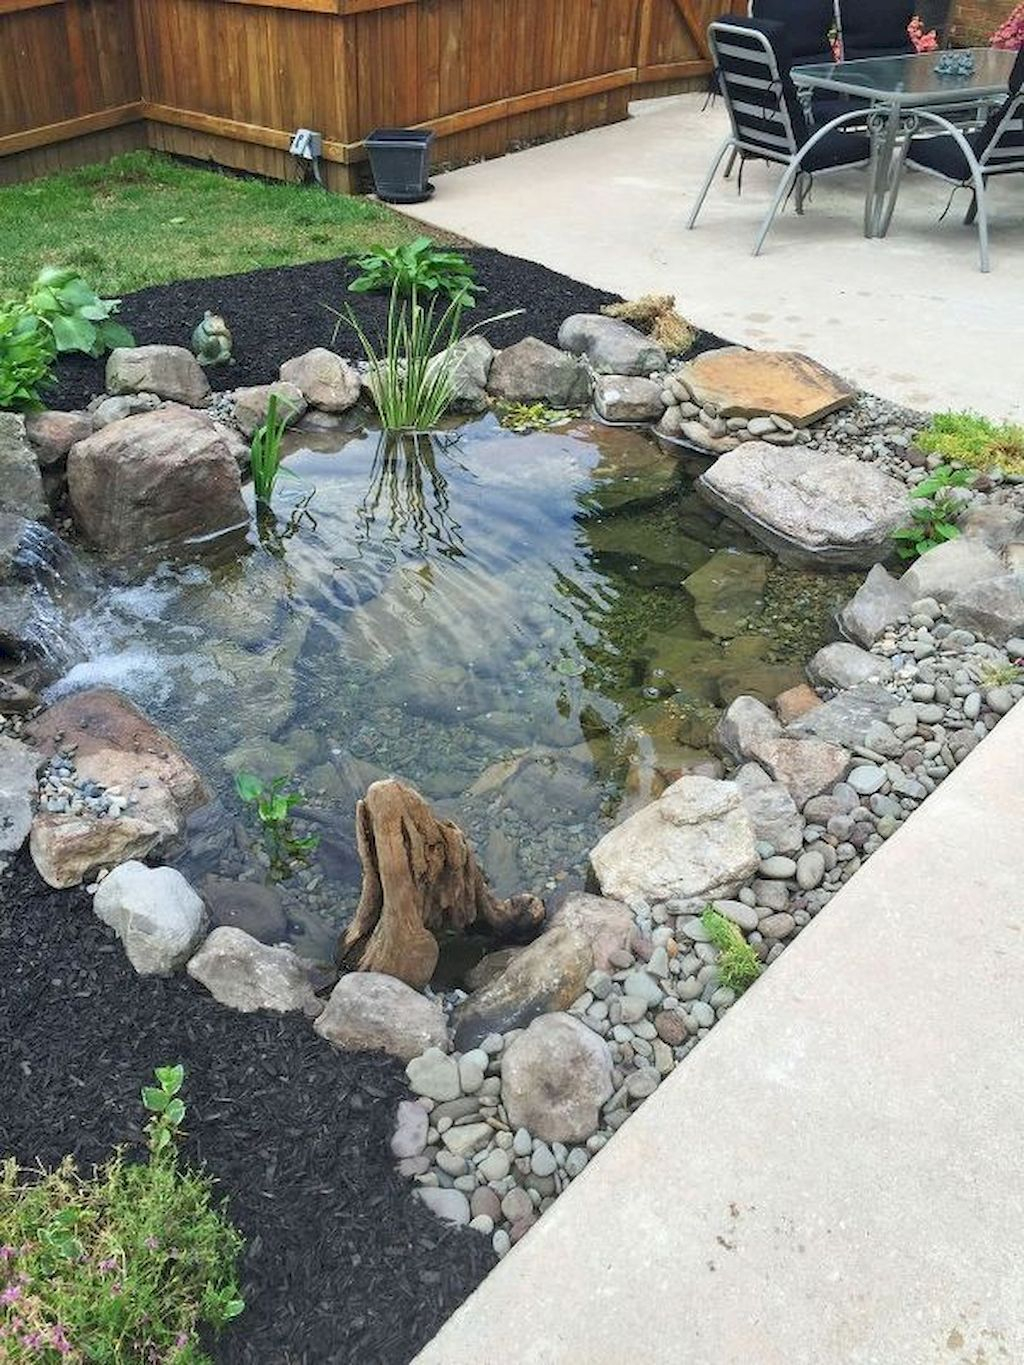 Design a fish pond garden with a waterfall concept 43